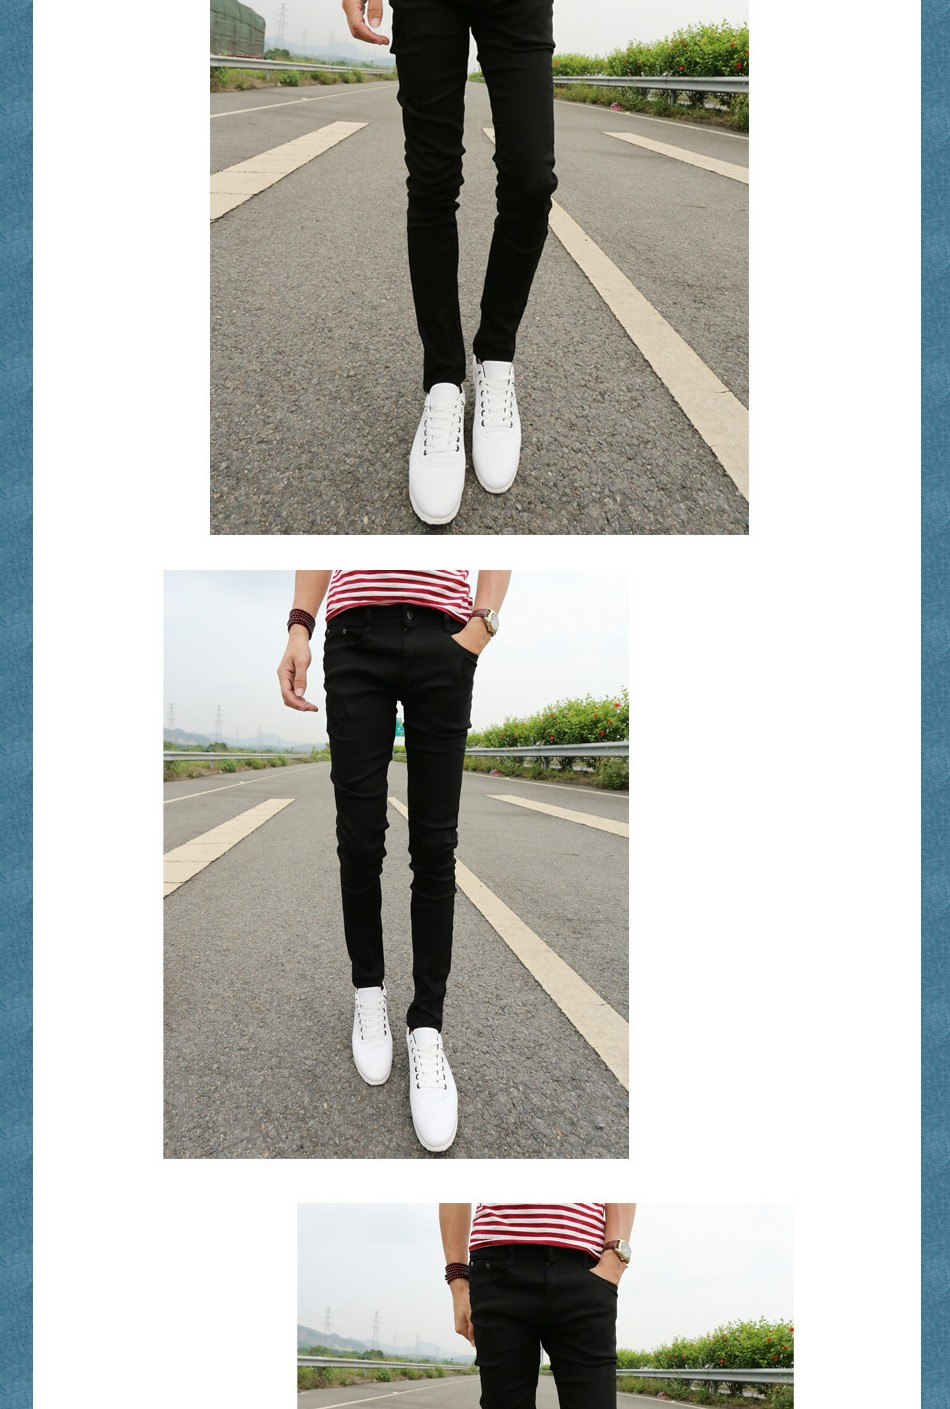 New 2020 Spring Summer Skinny jeans mens leisure stretch feet pants tight black length trousers Cheap Pencil Pants Men wholesale